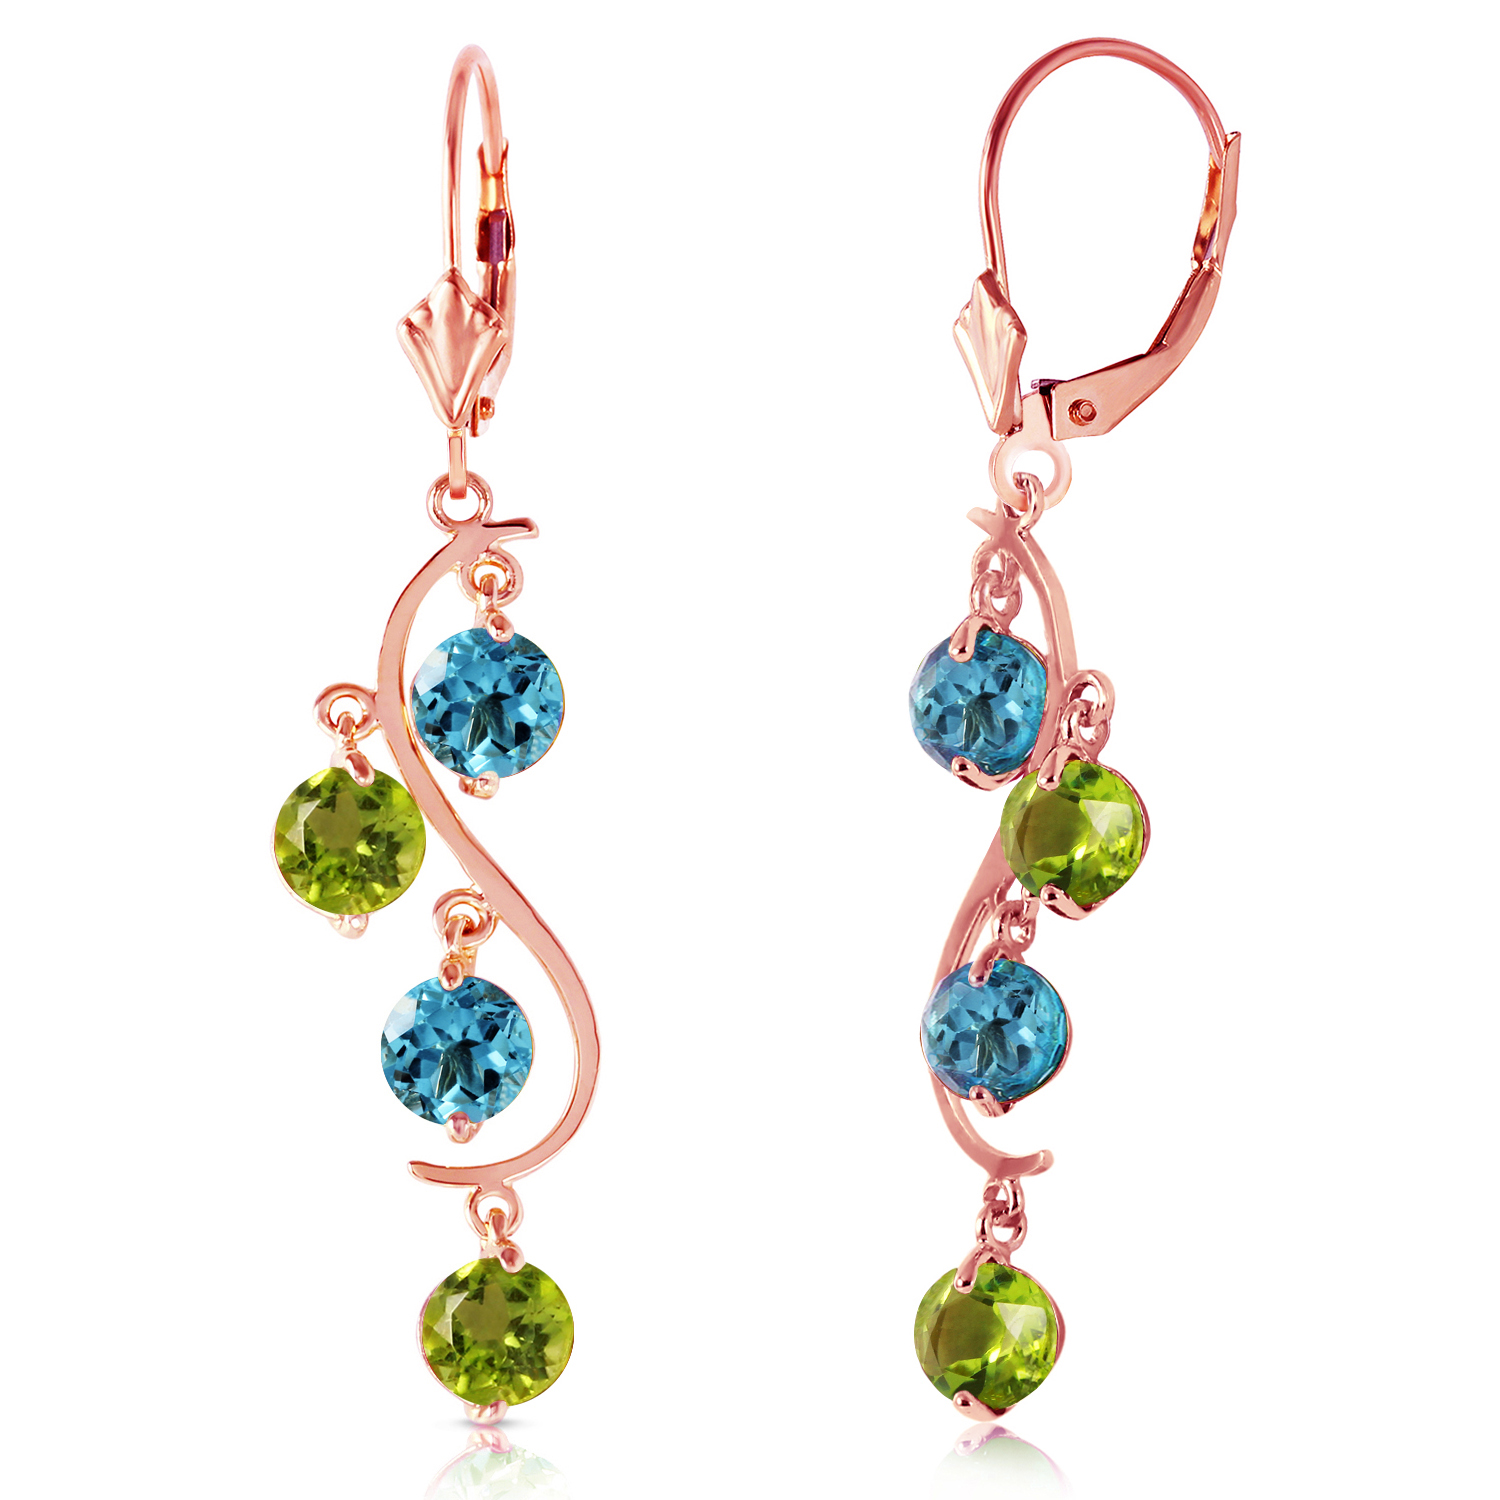 4 94 Carat 14K Solid Rose Gold Chandelier Earrings Blue Topaz